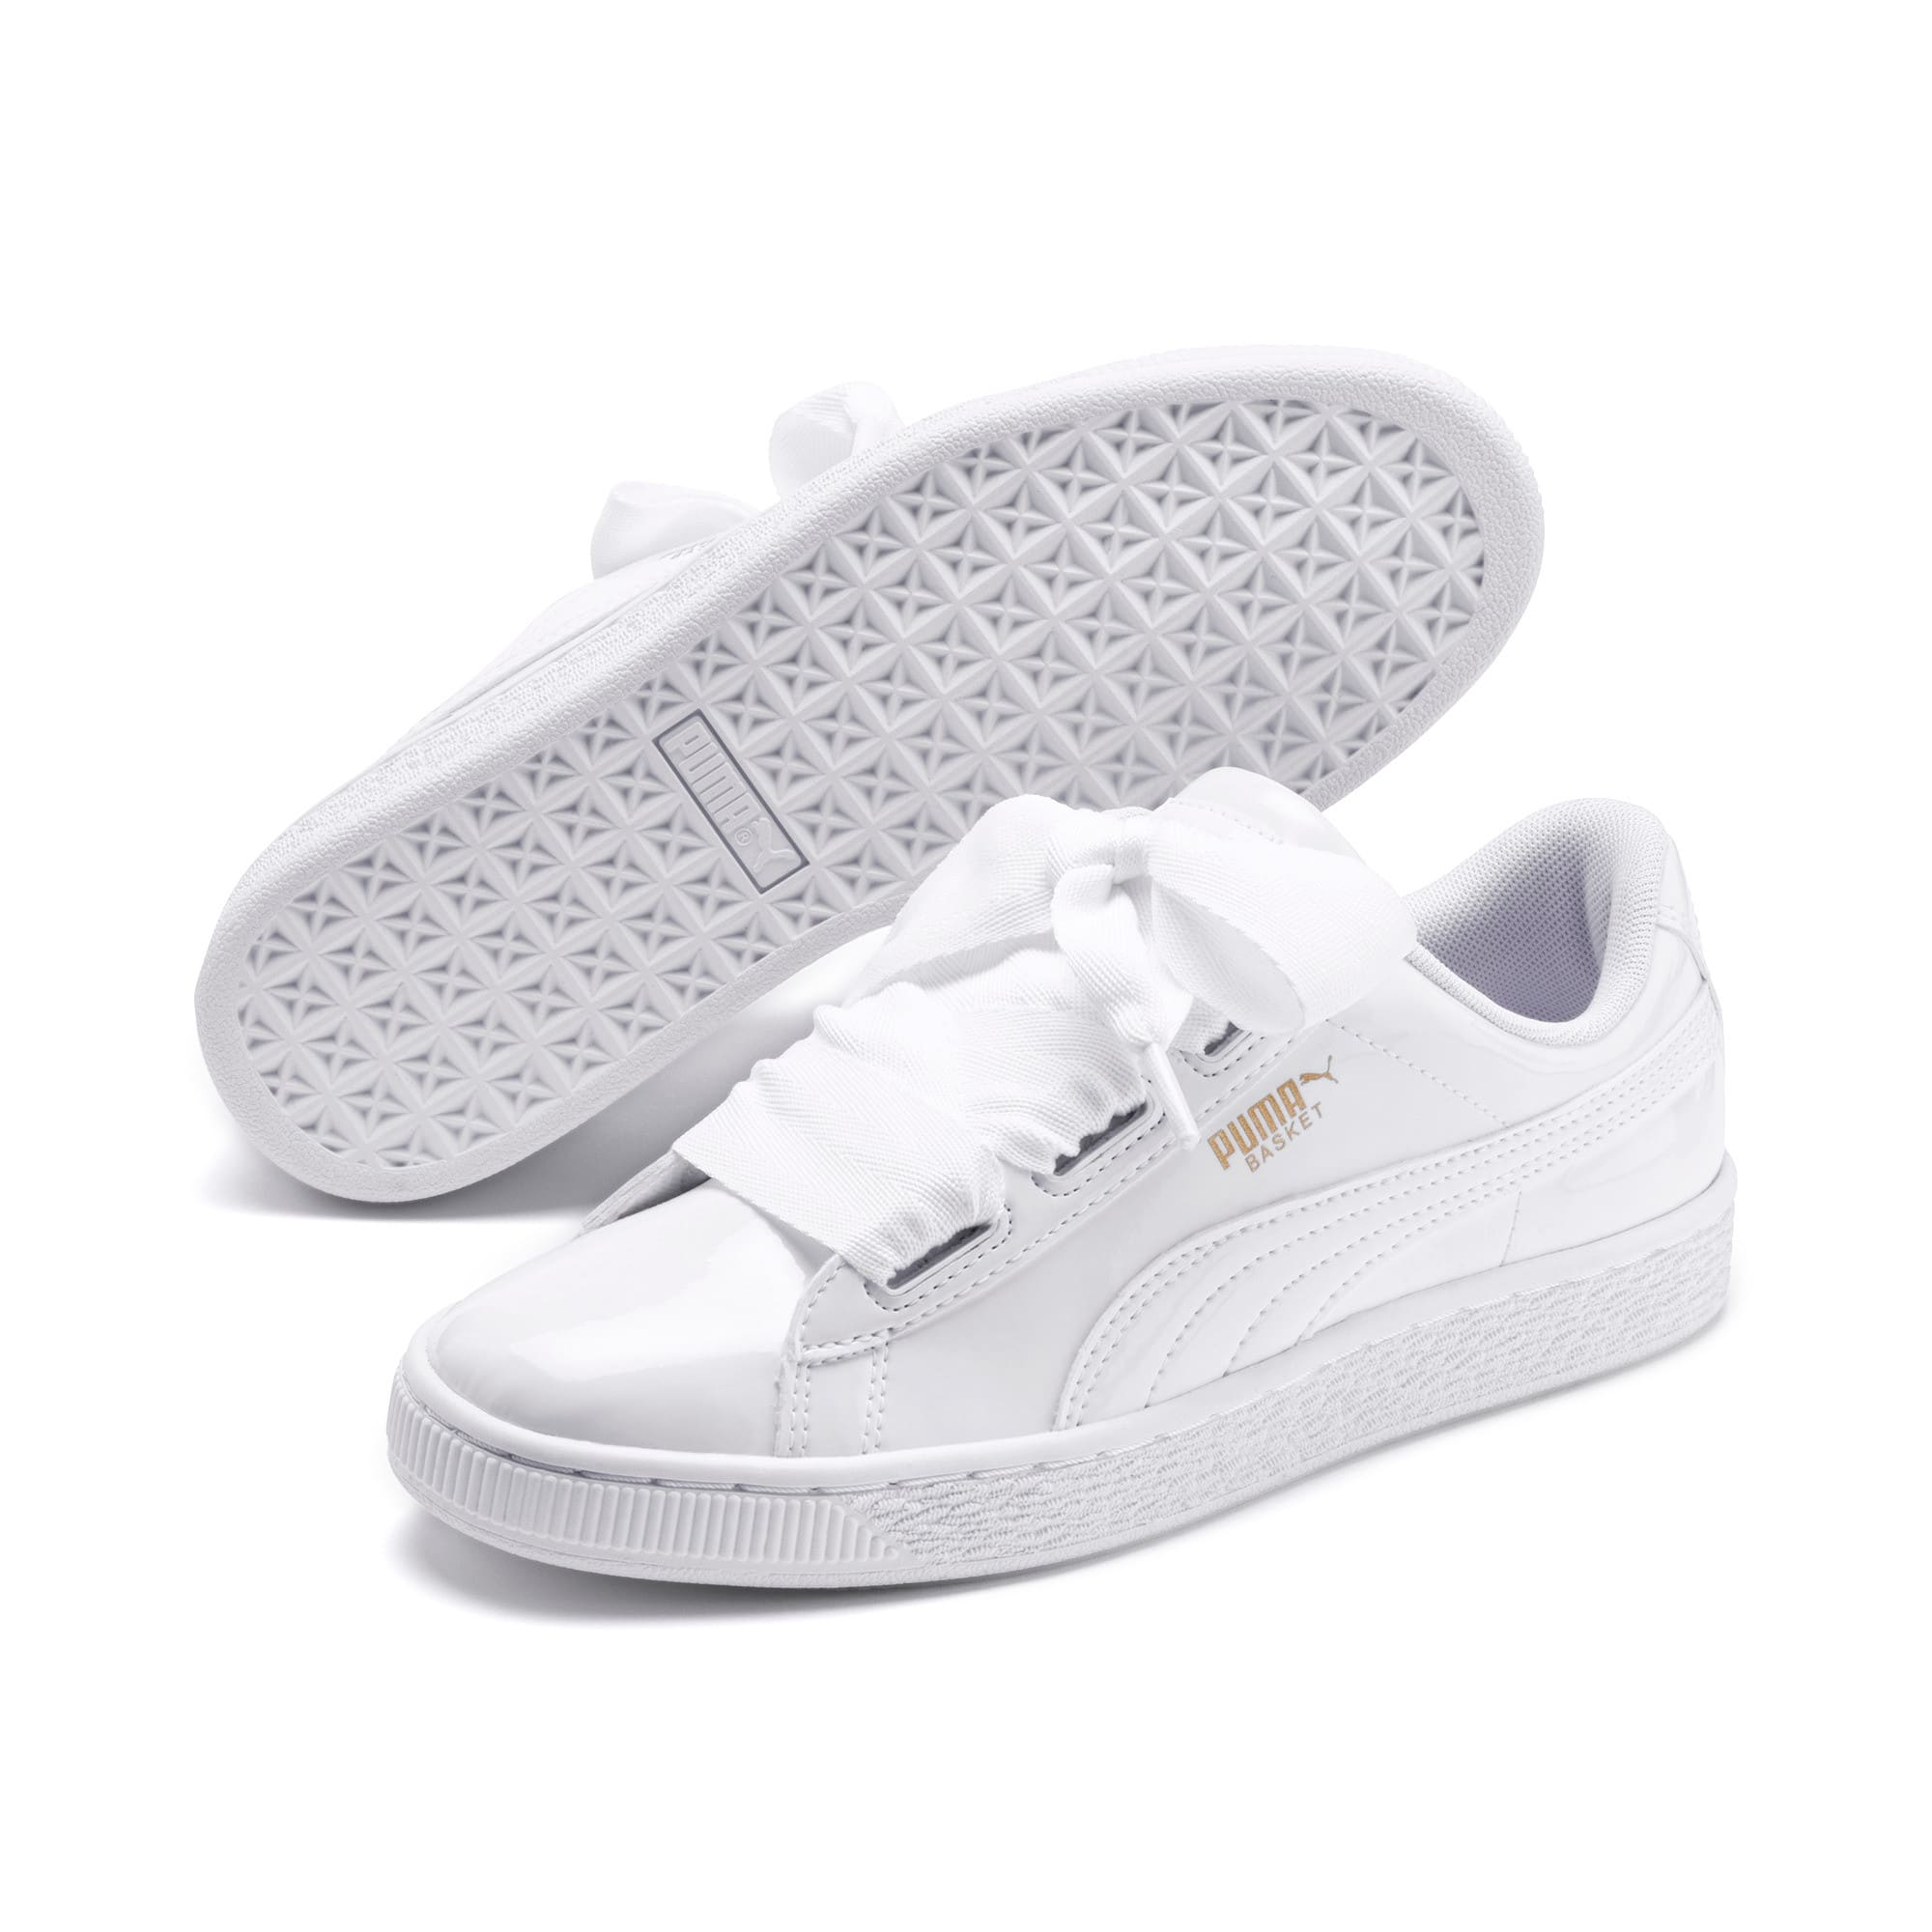 Thumbnail 2 of Basket Heart Patent Sneakers JR, White-Black-PRISM PINK-Gold, medium